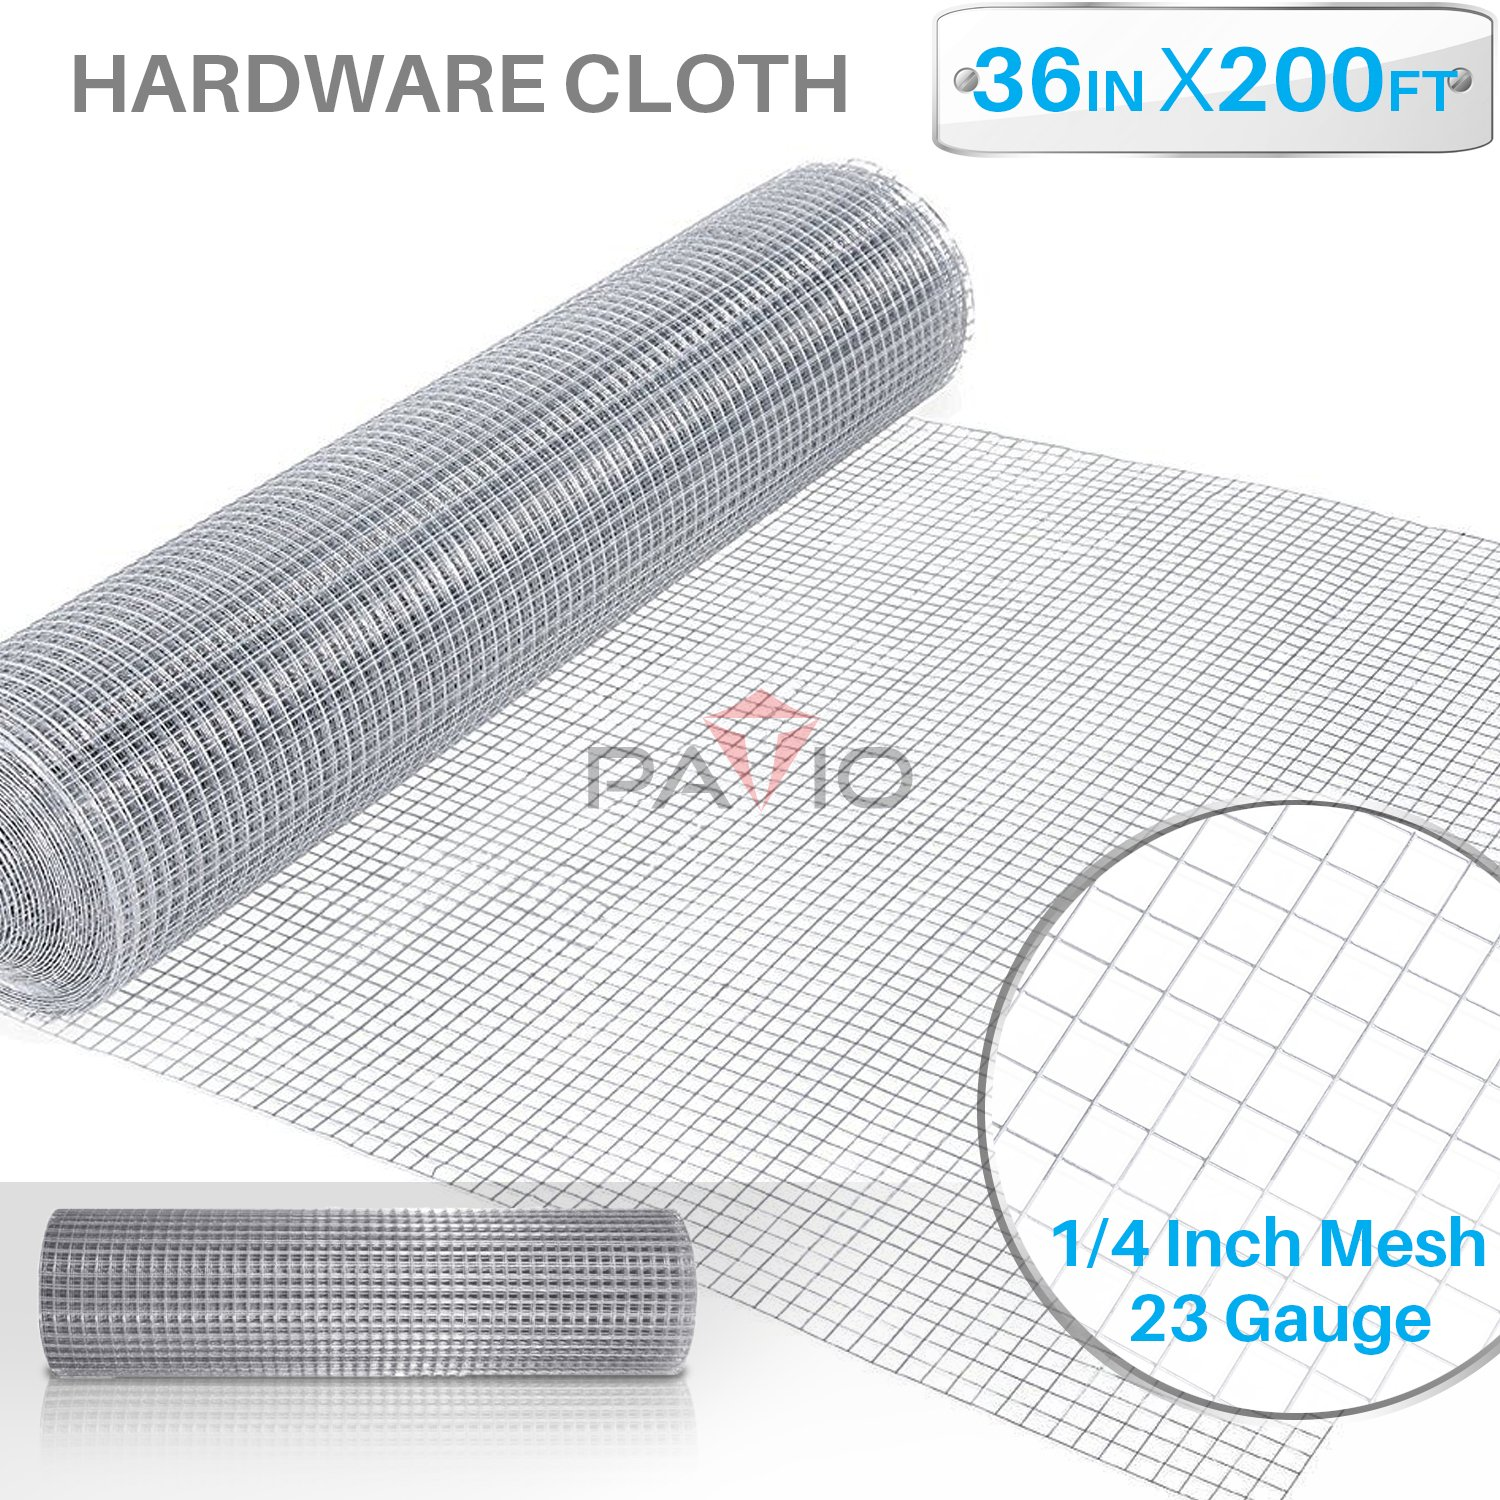 Patio Paradise 1/4 36-Inch x 200-Feet 23 Gauge Wire Mesh Galvanized Hardware Cloth for Garden Plant Rabbit Chicken Run Chain Link Fencing Guard Cage